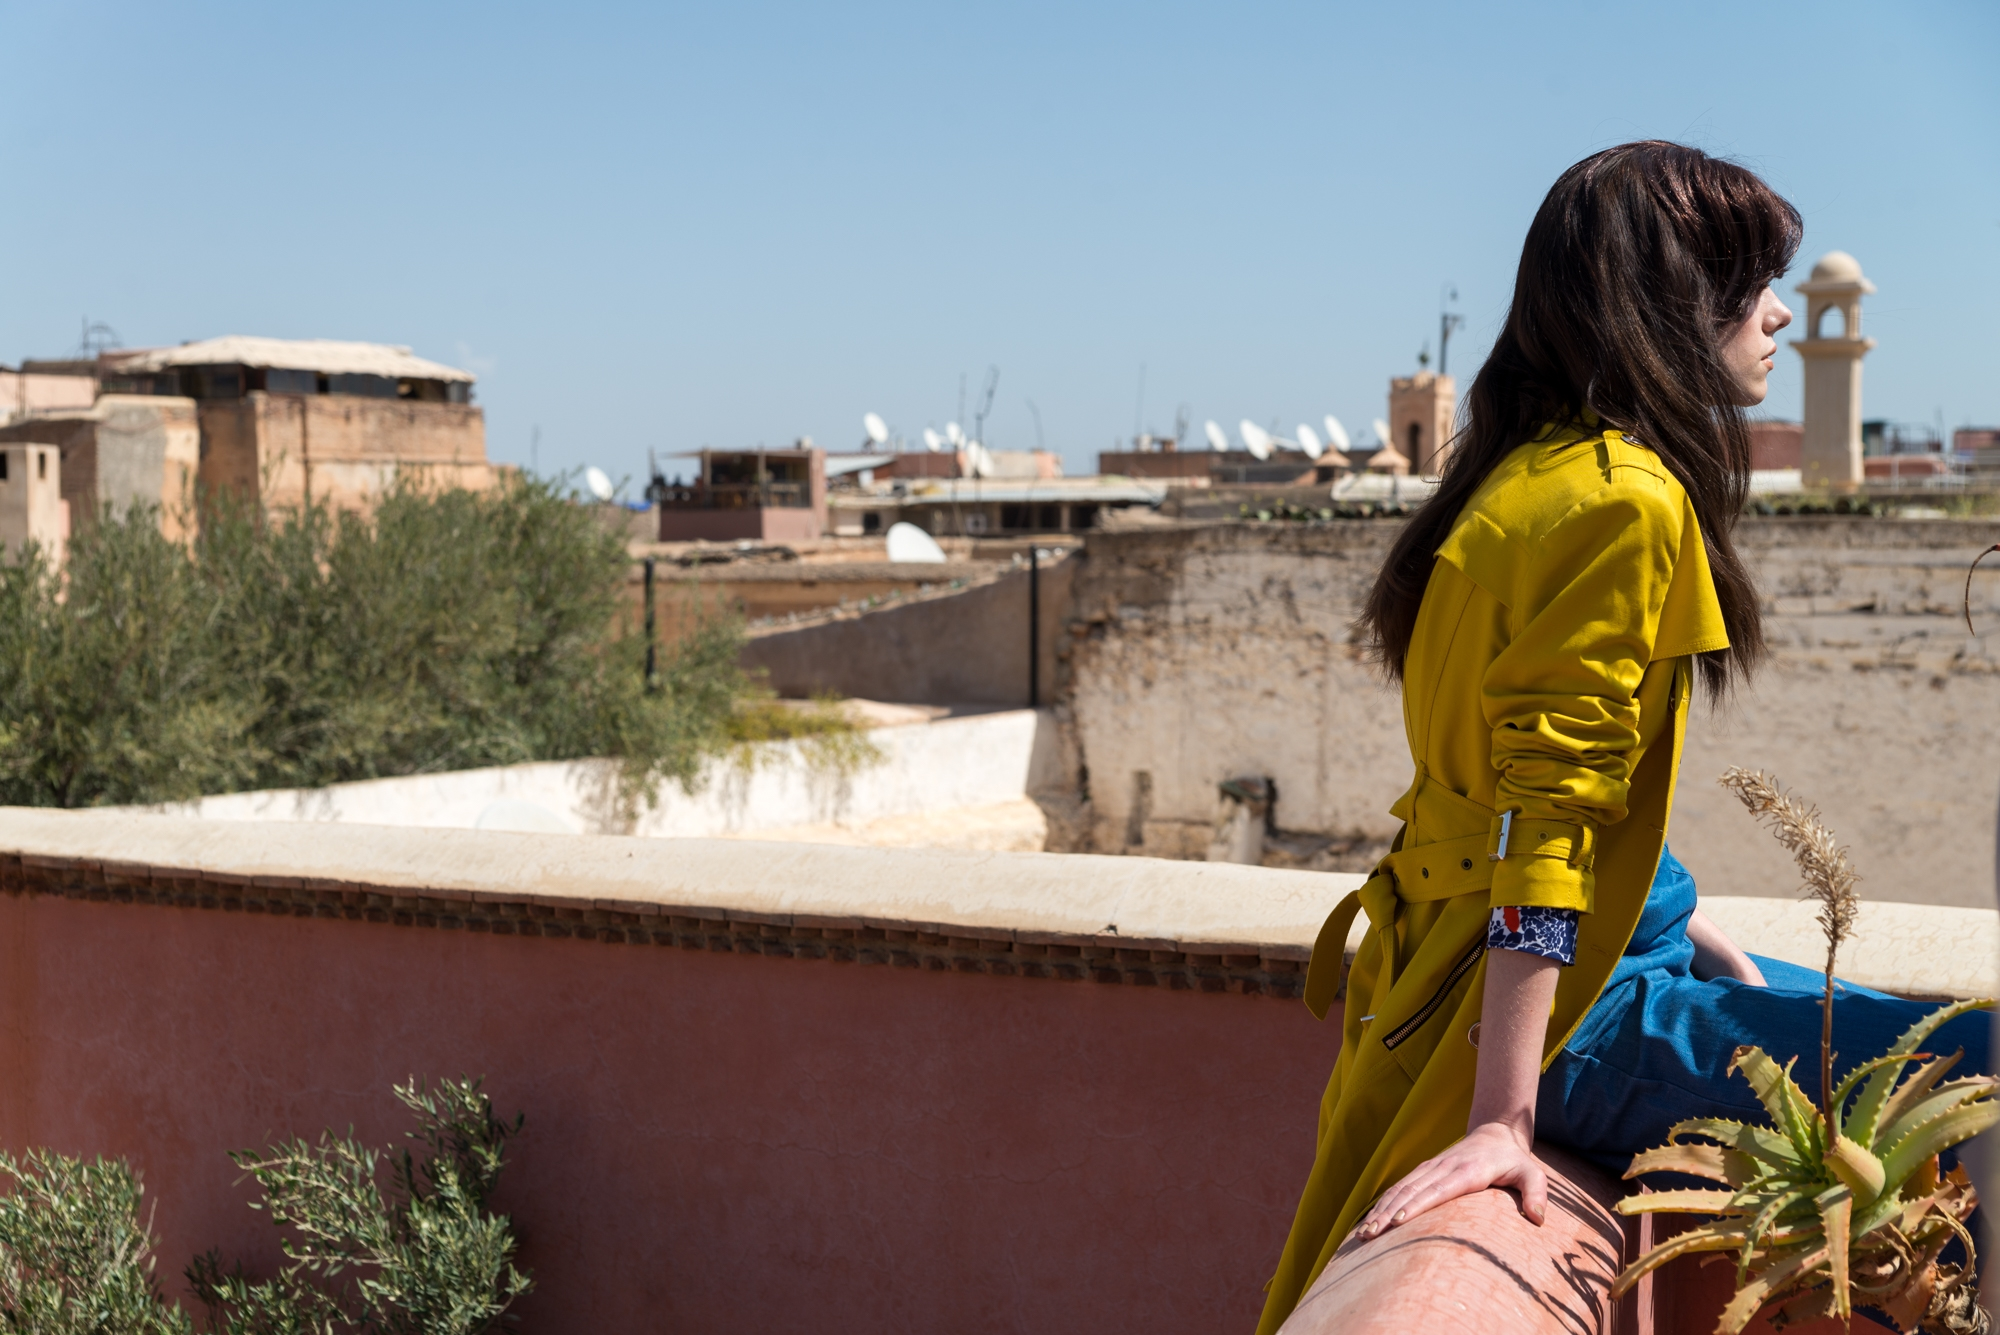 Videographer for Photoshoot in Marrakesh, Morocco